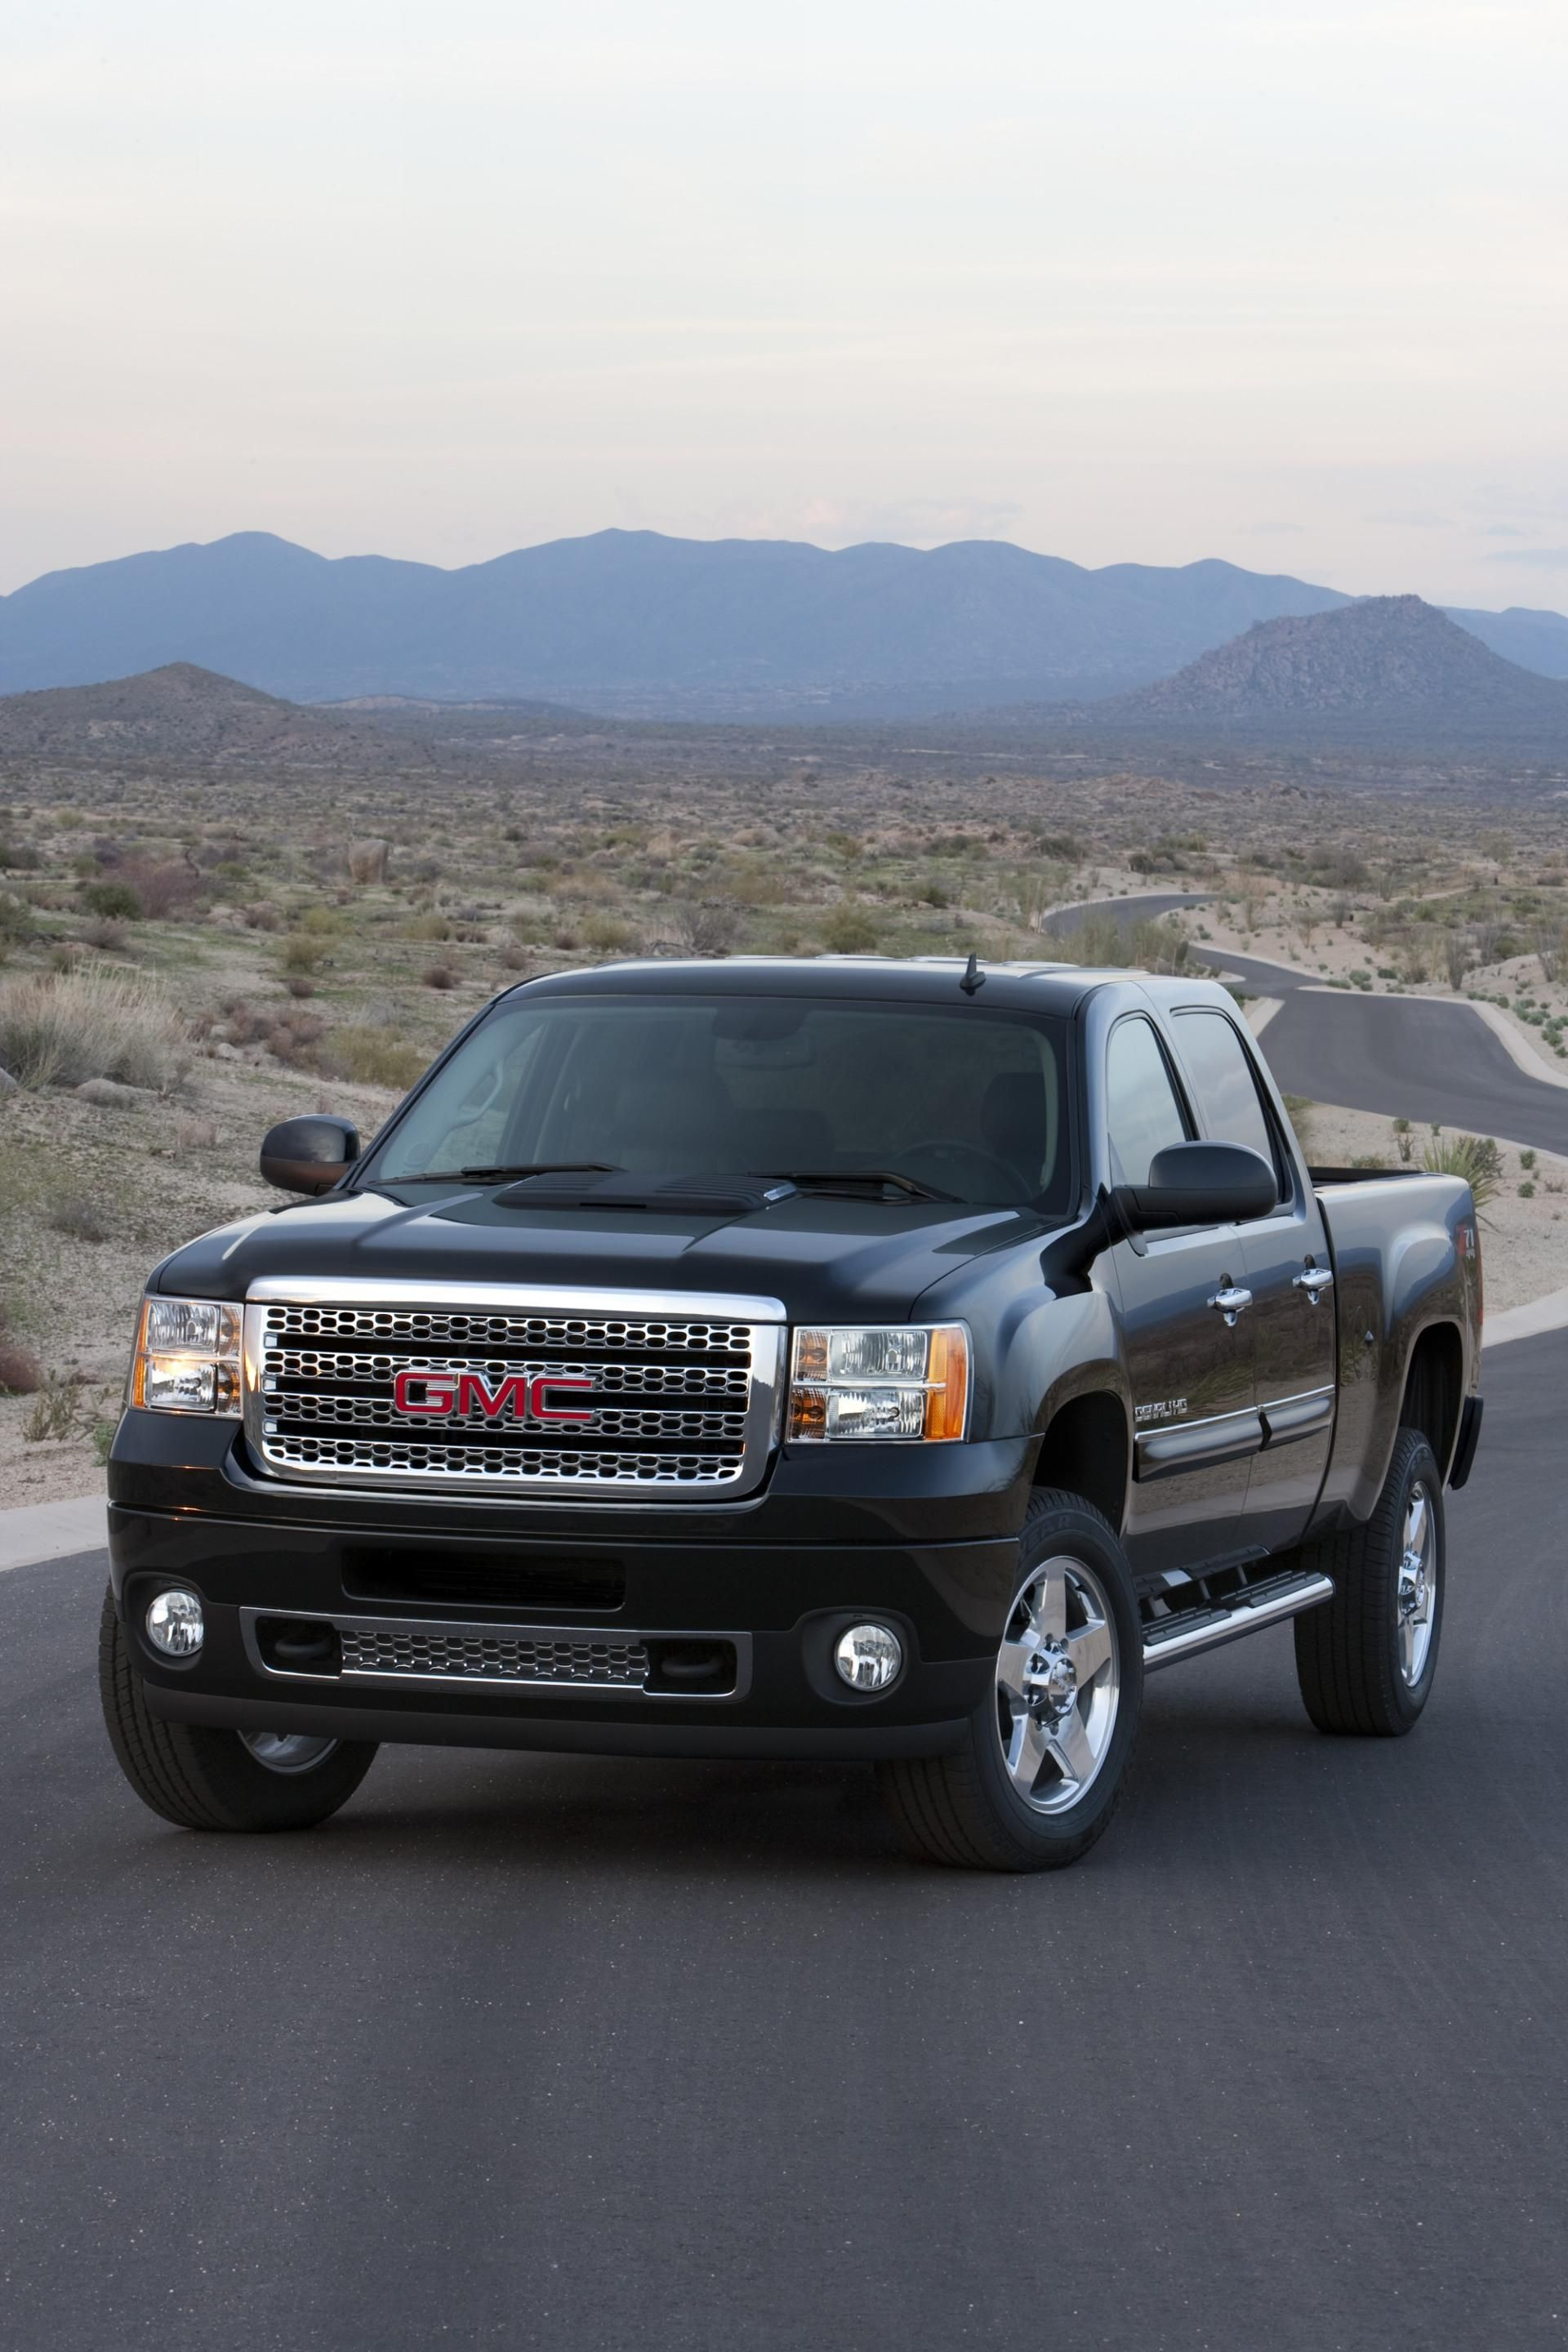 owned dealer placerville me gmc used thompsons sacramento buick sierra family near